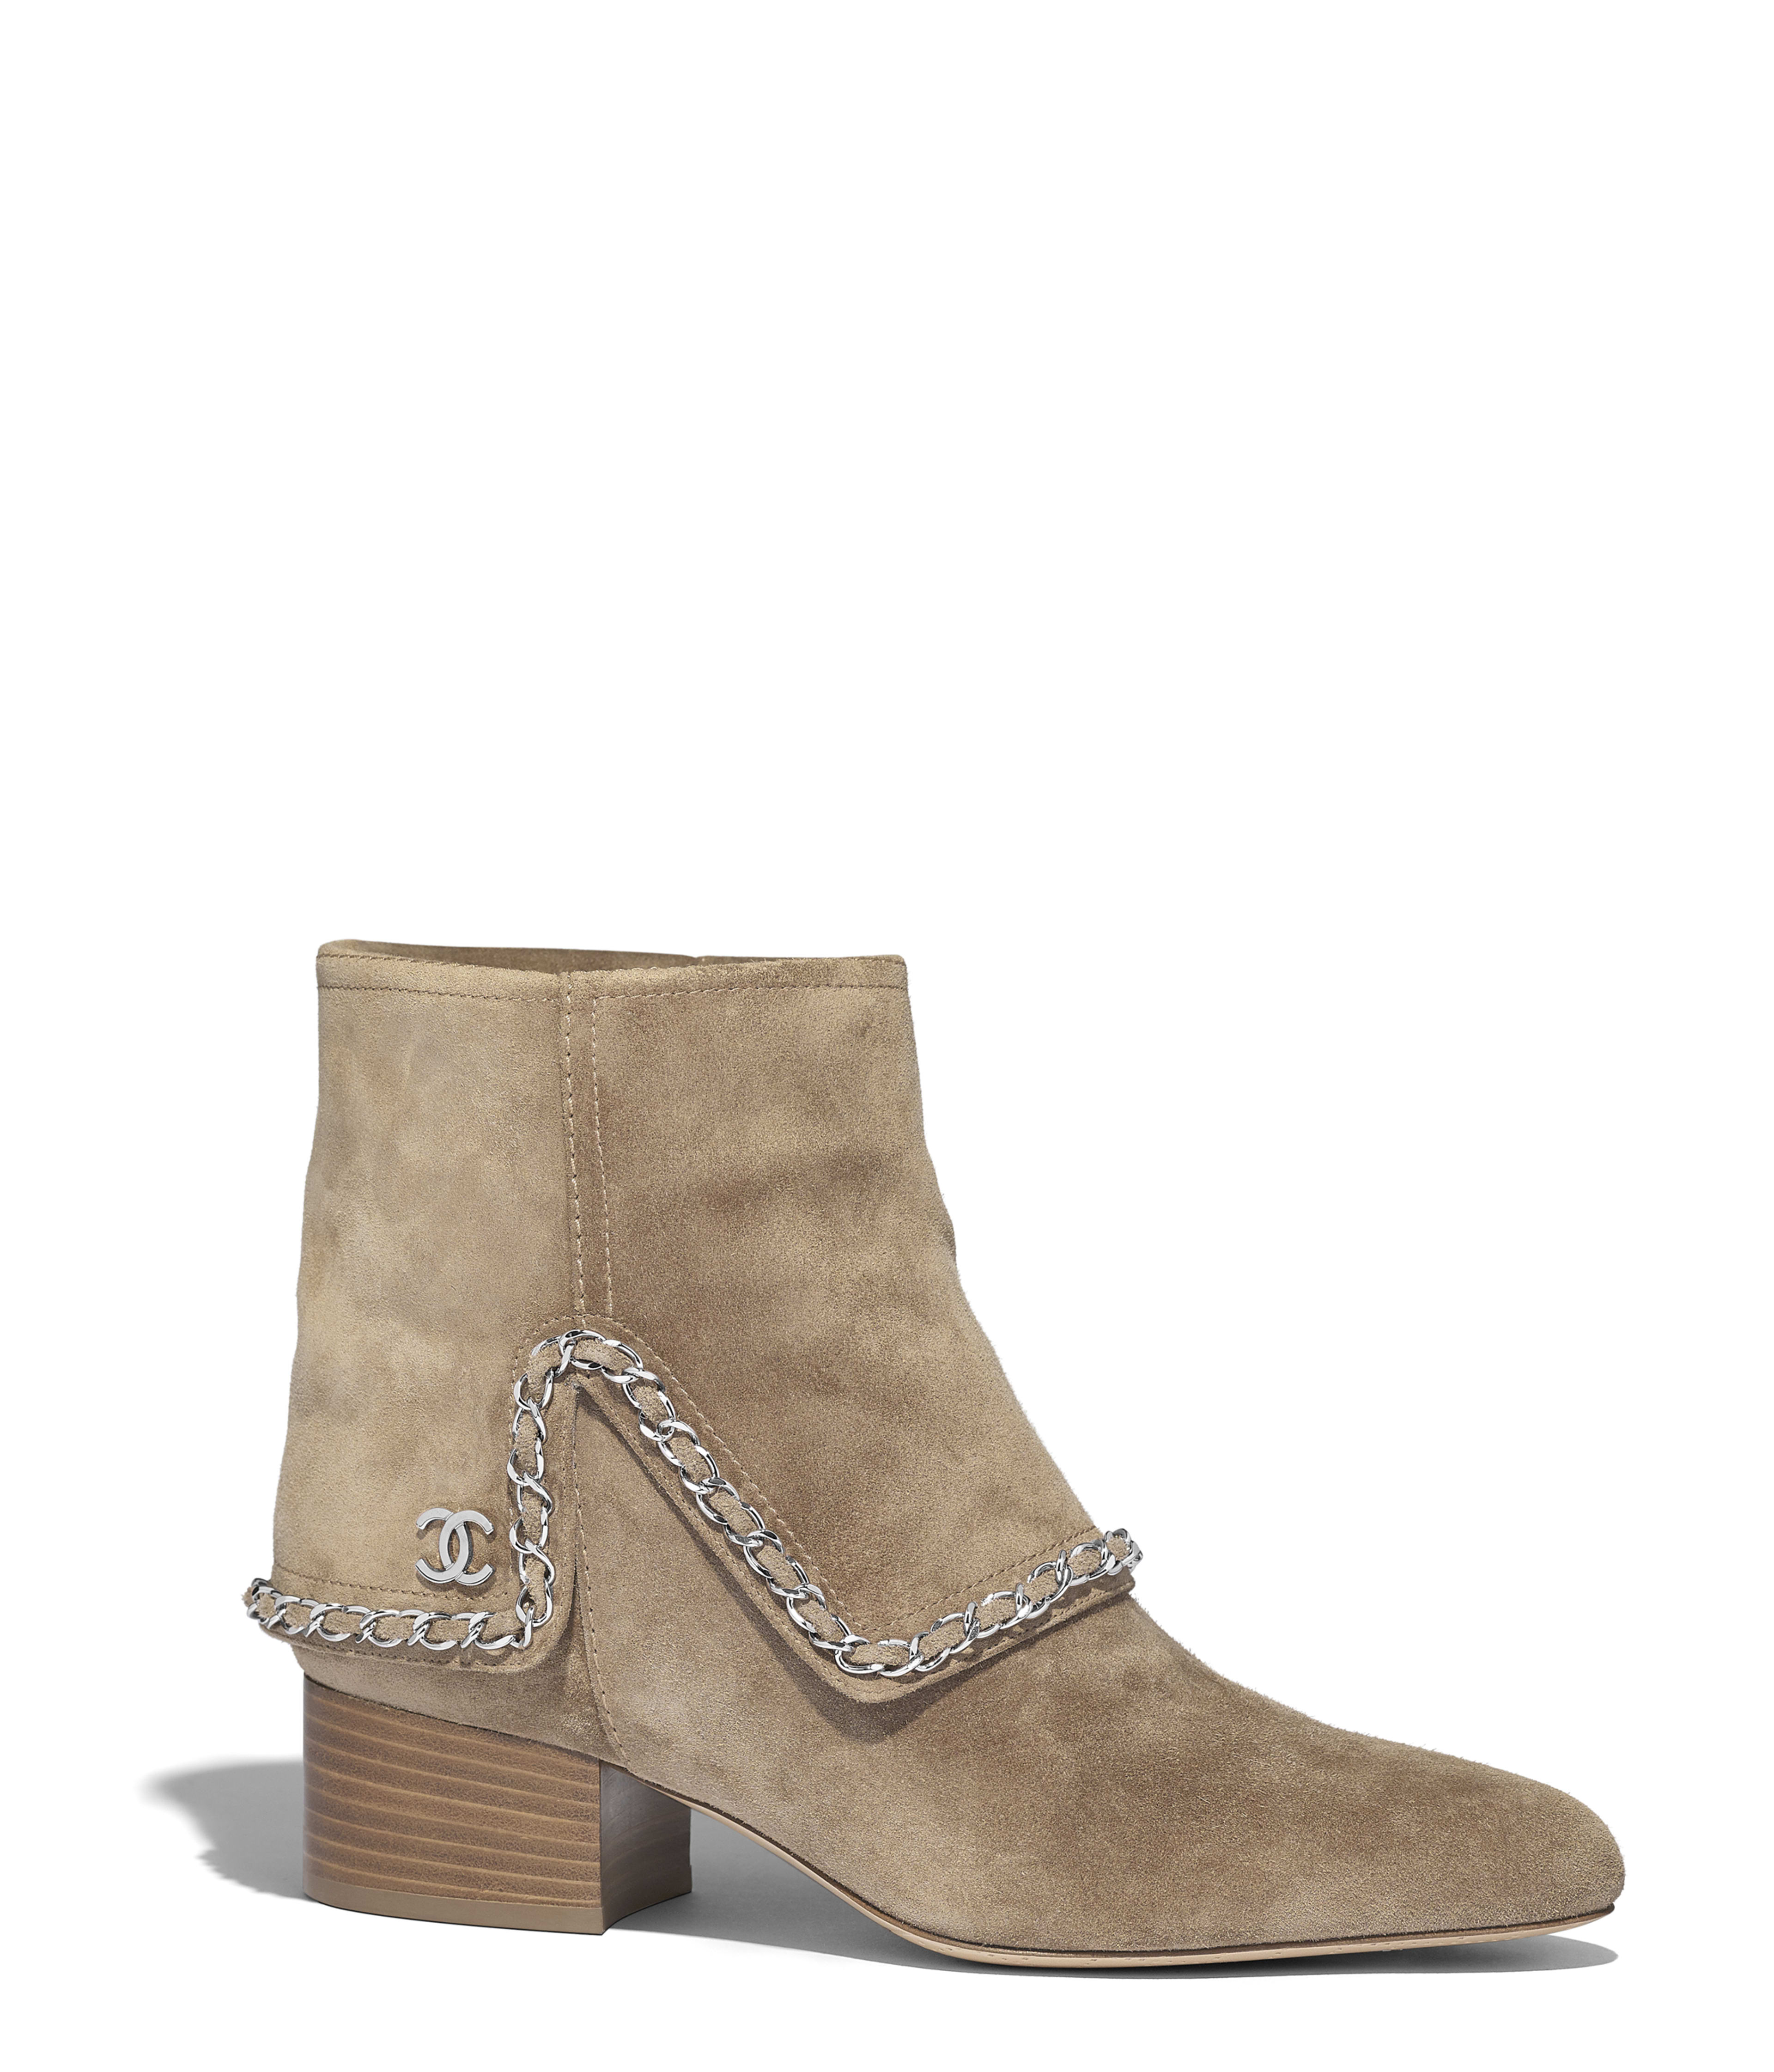 f74119103f5 Short Boots - Shoes | CHANEL